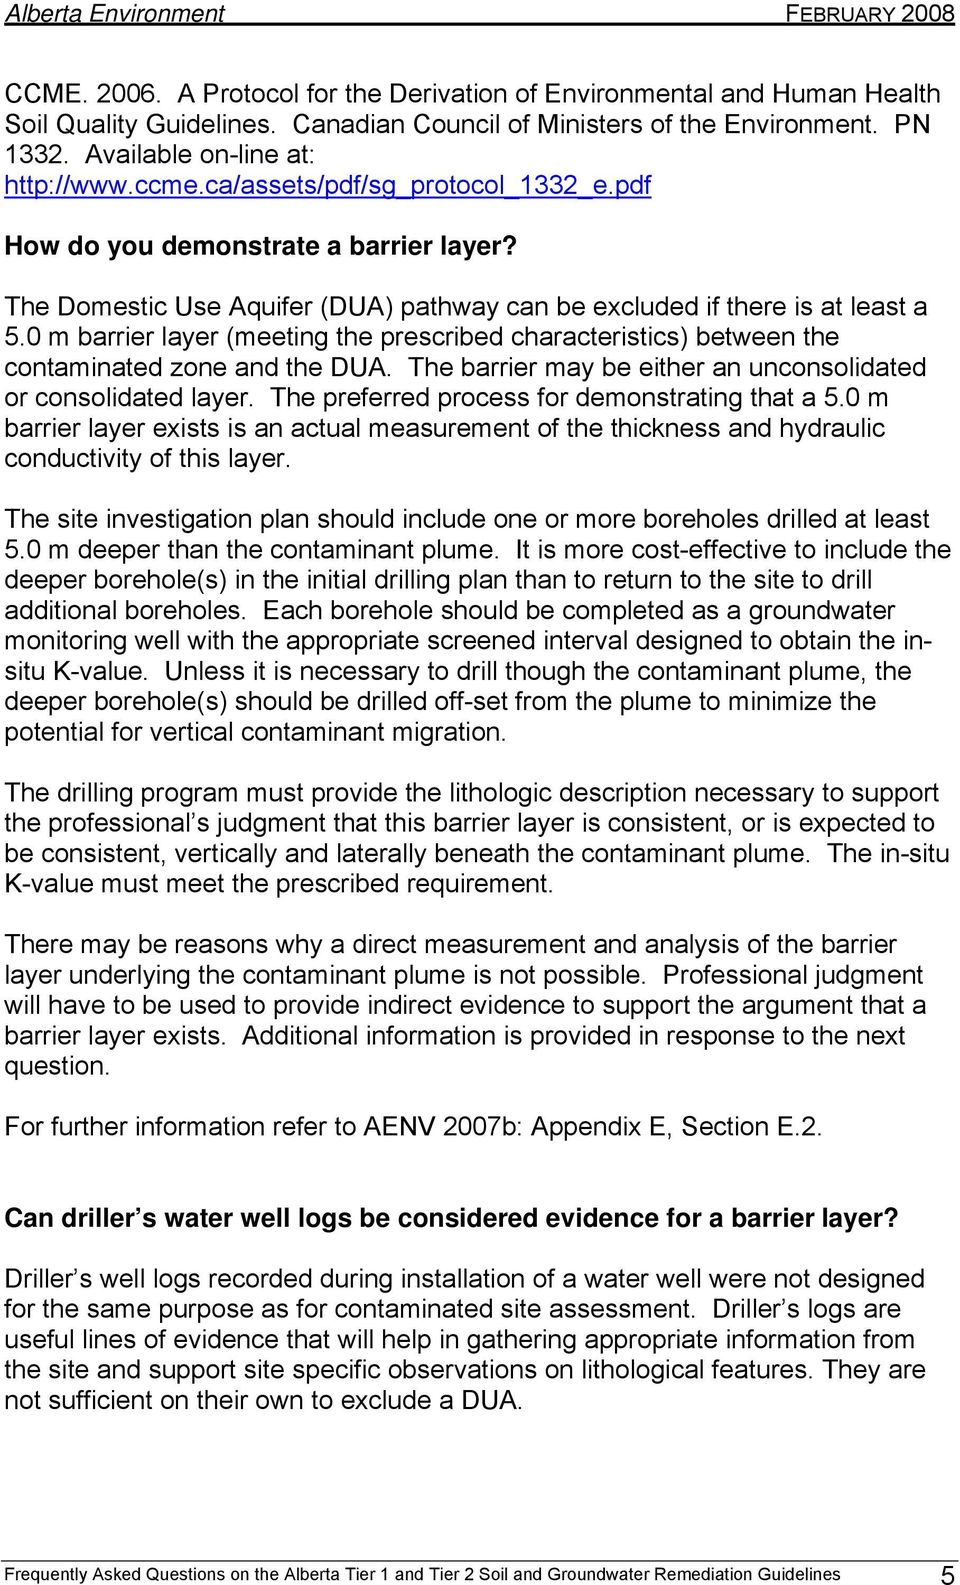 0 m barrier layer (meeting the prescribed characteristics) between the contaminated zone and the DUA. The barrier may be either an unconsolidated or consolidated layer.